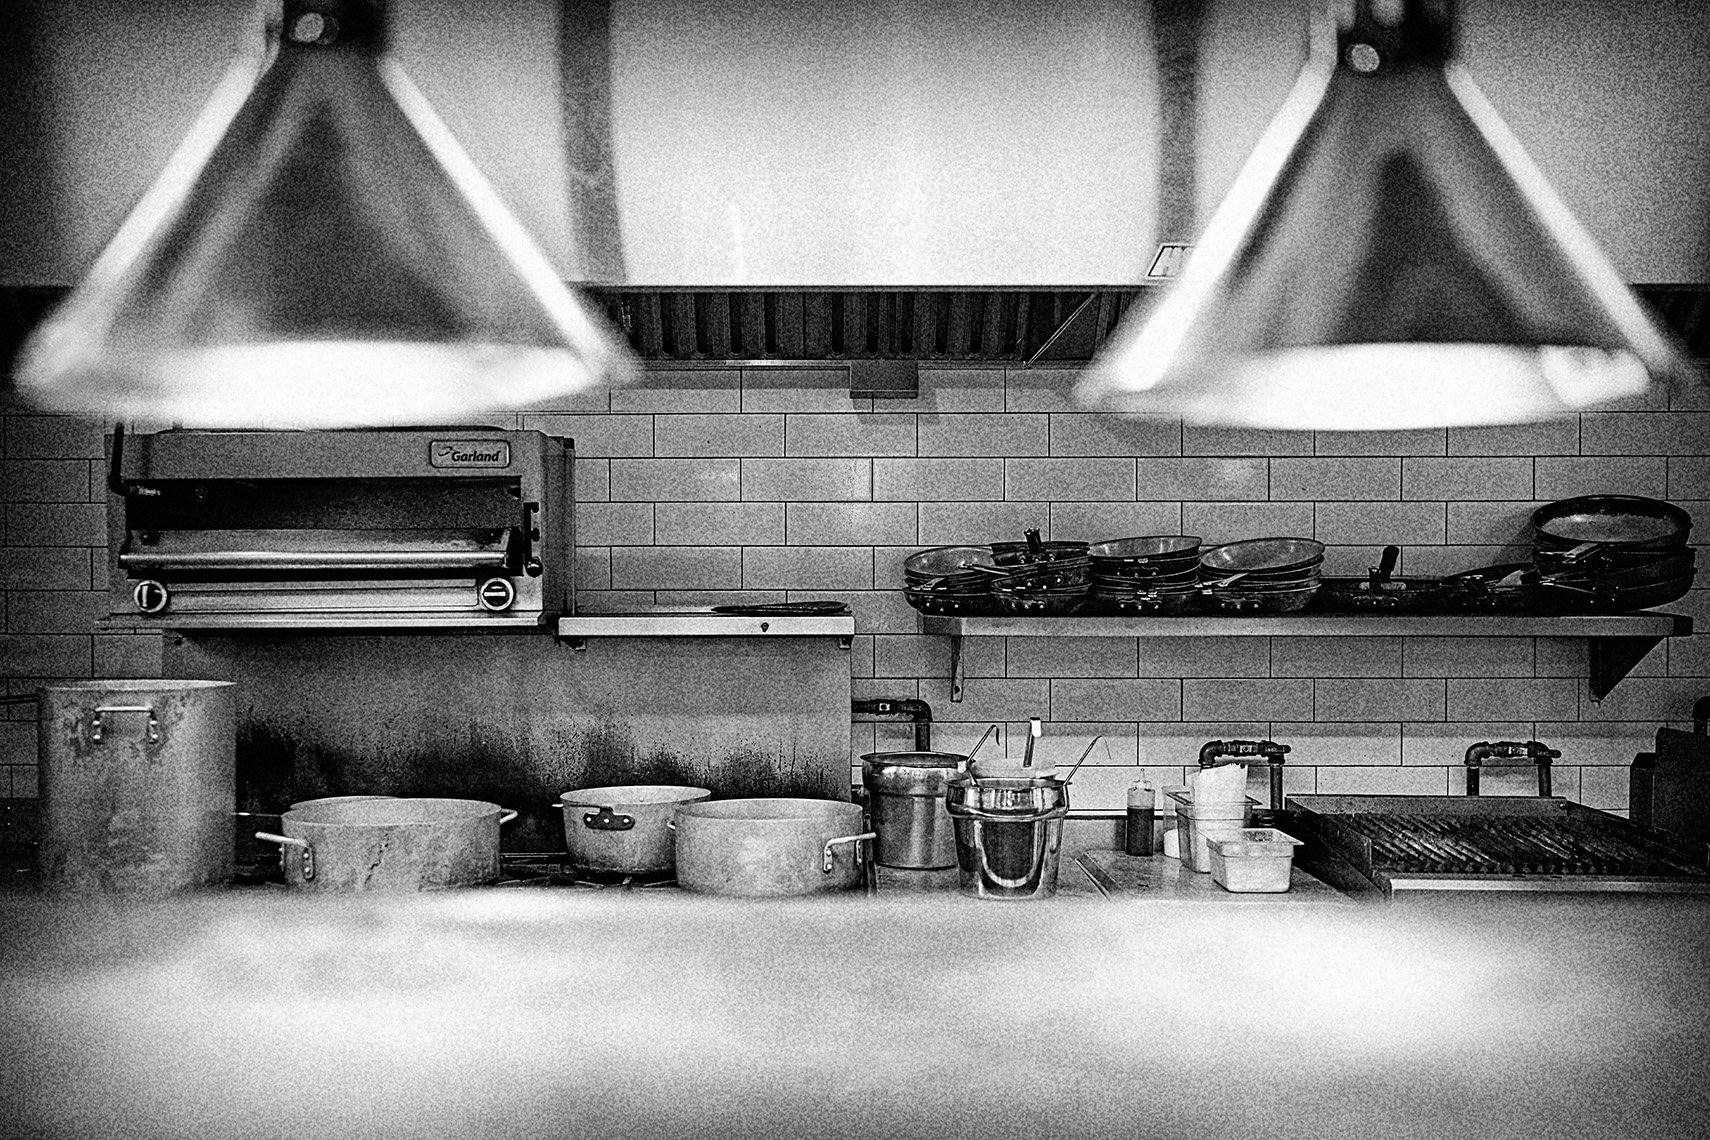 kitchen_BW_final